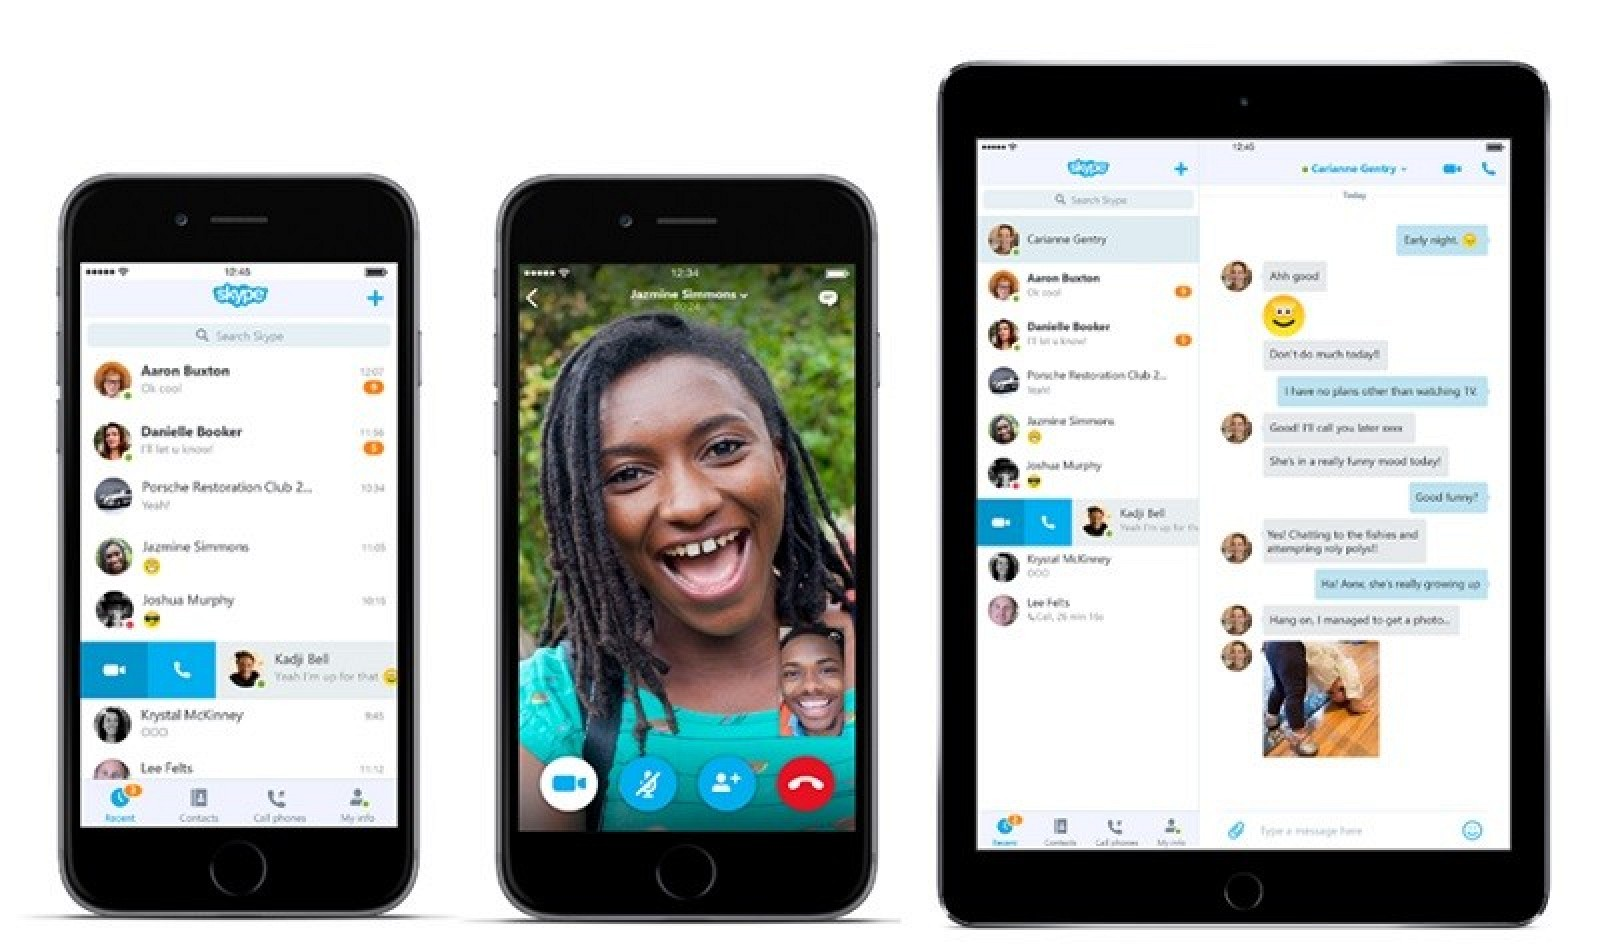 Skype Updates iOS and Android Apps With New Design ...